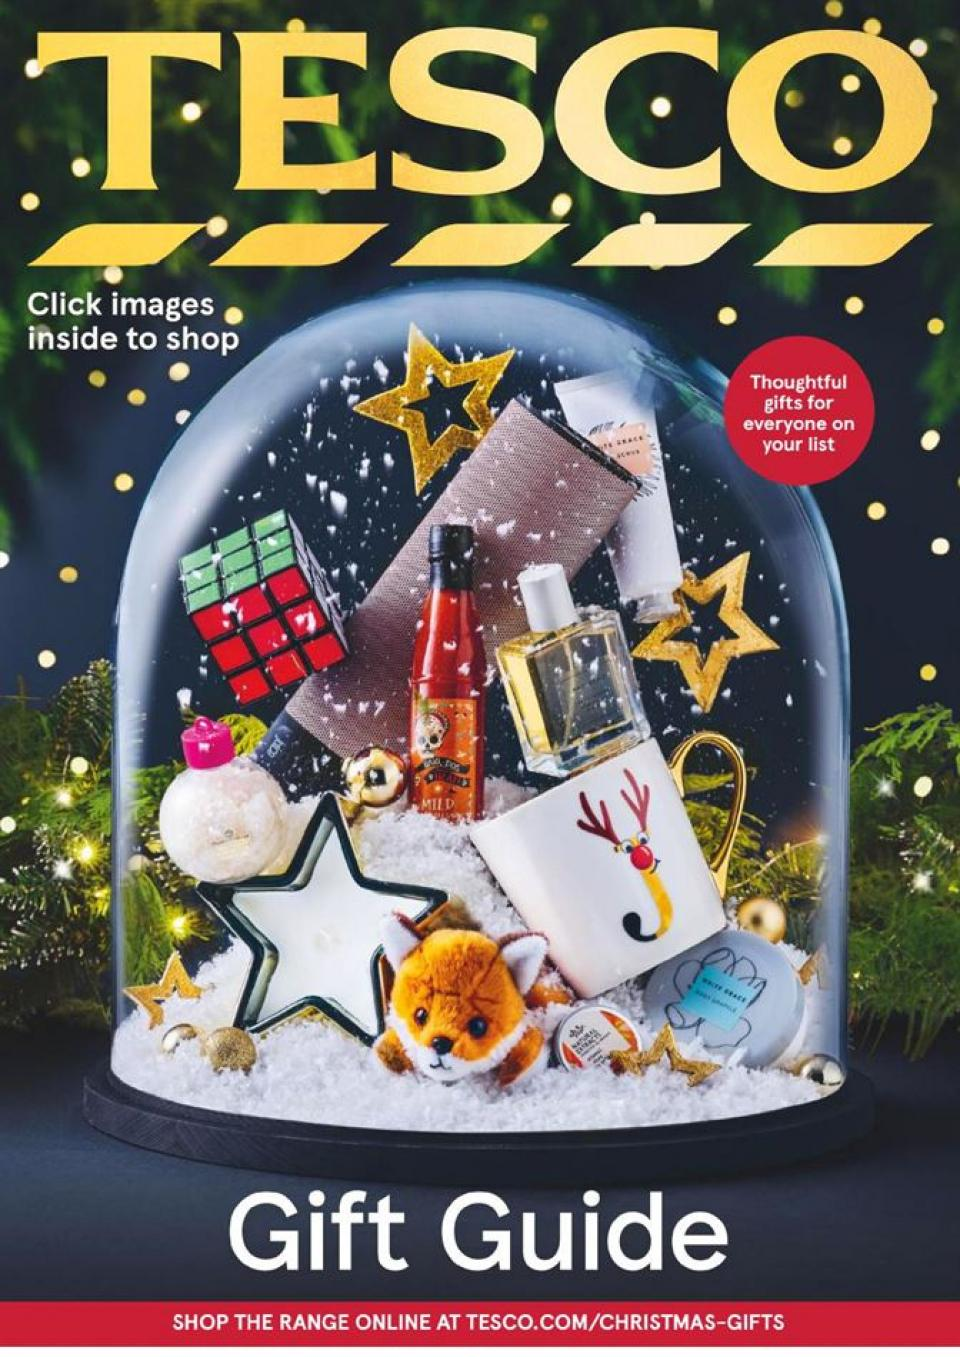 tesco offers gift guide 2 november 2020